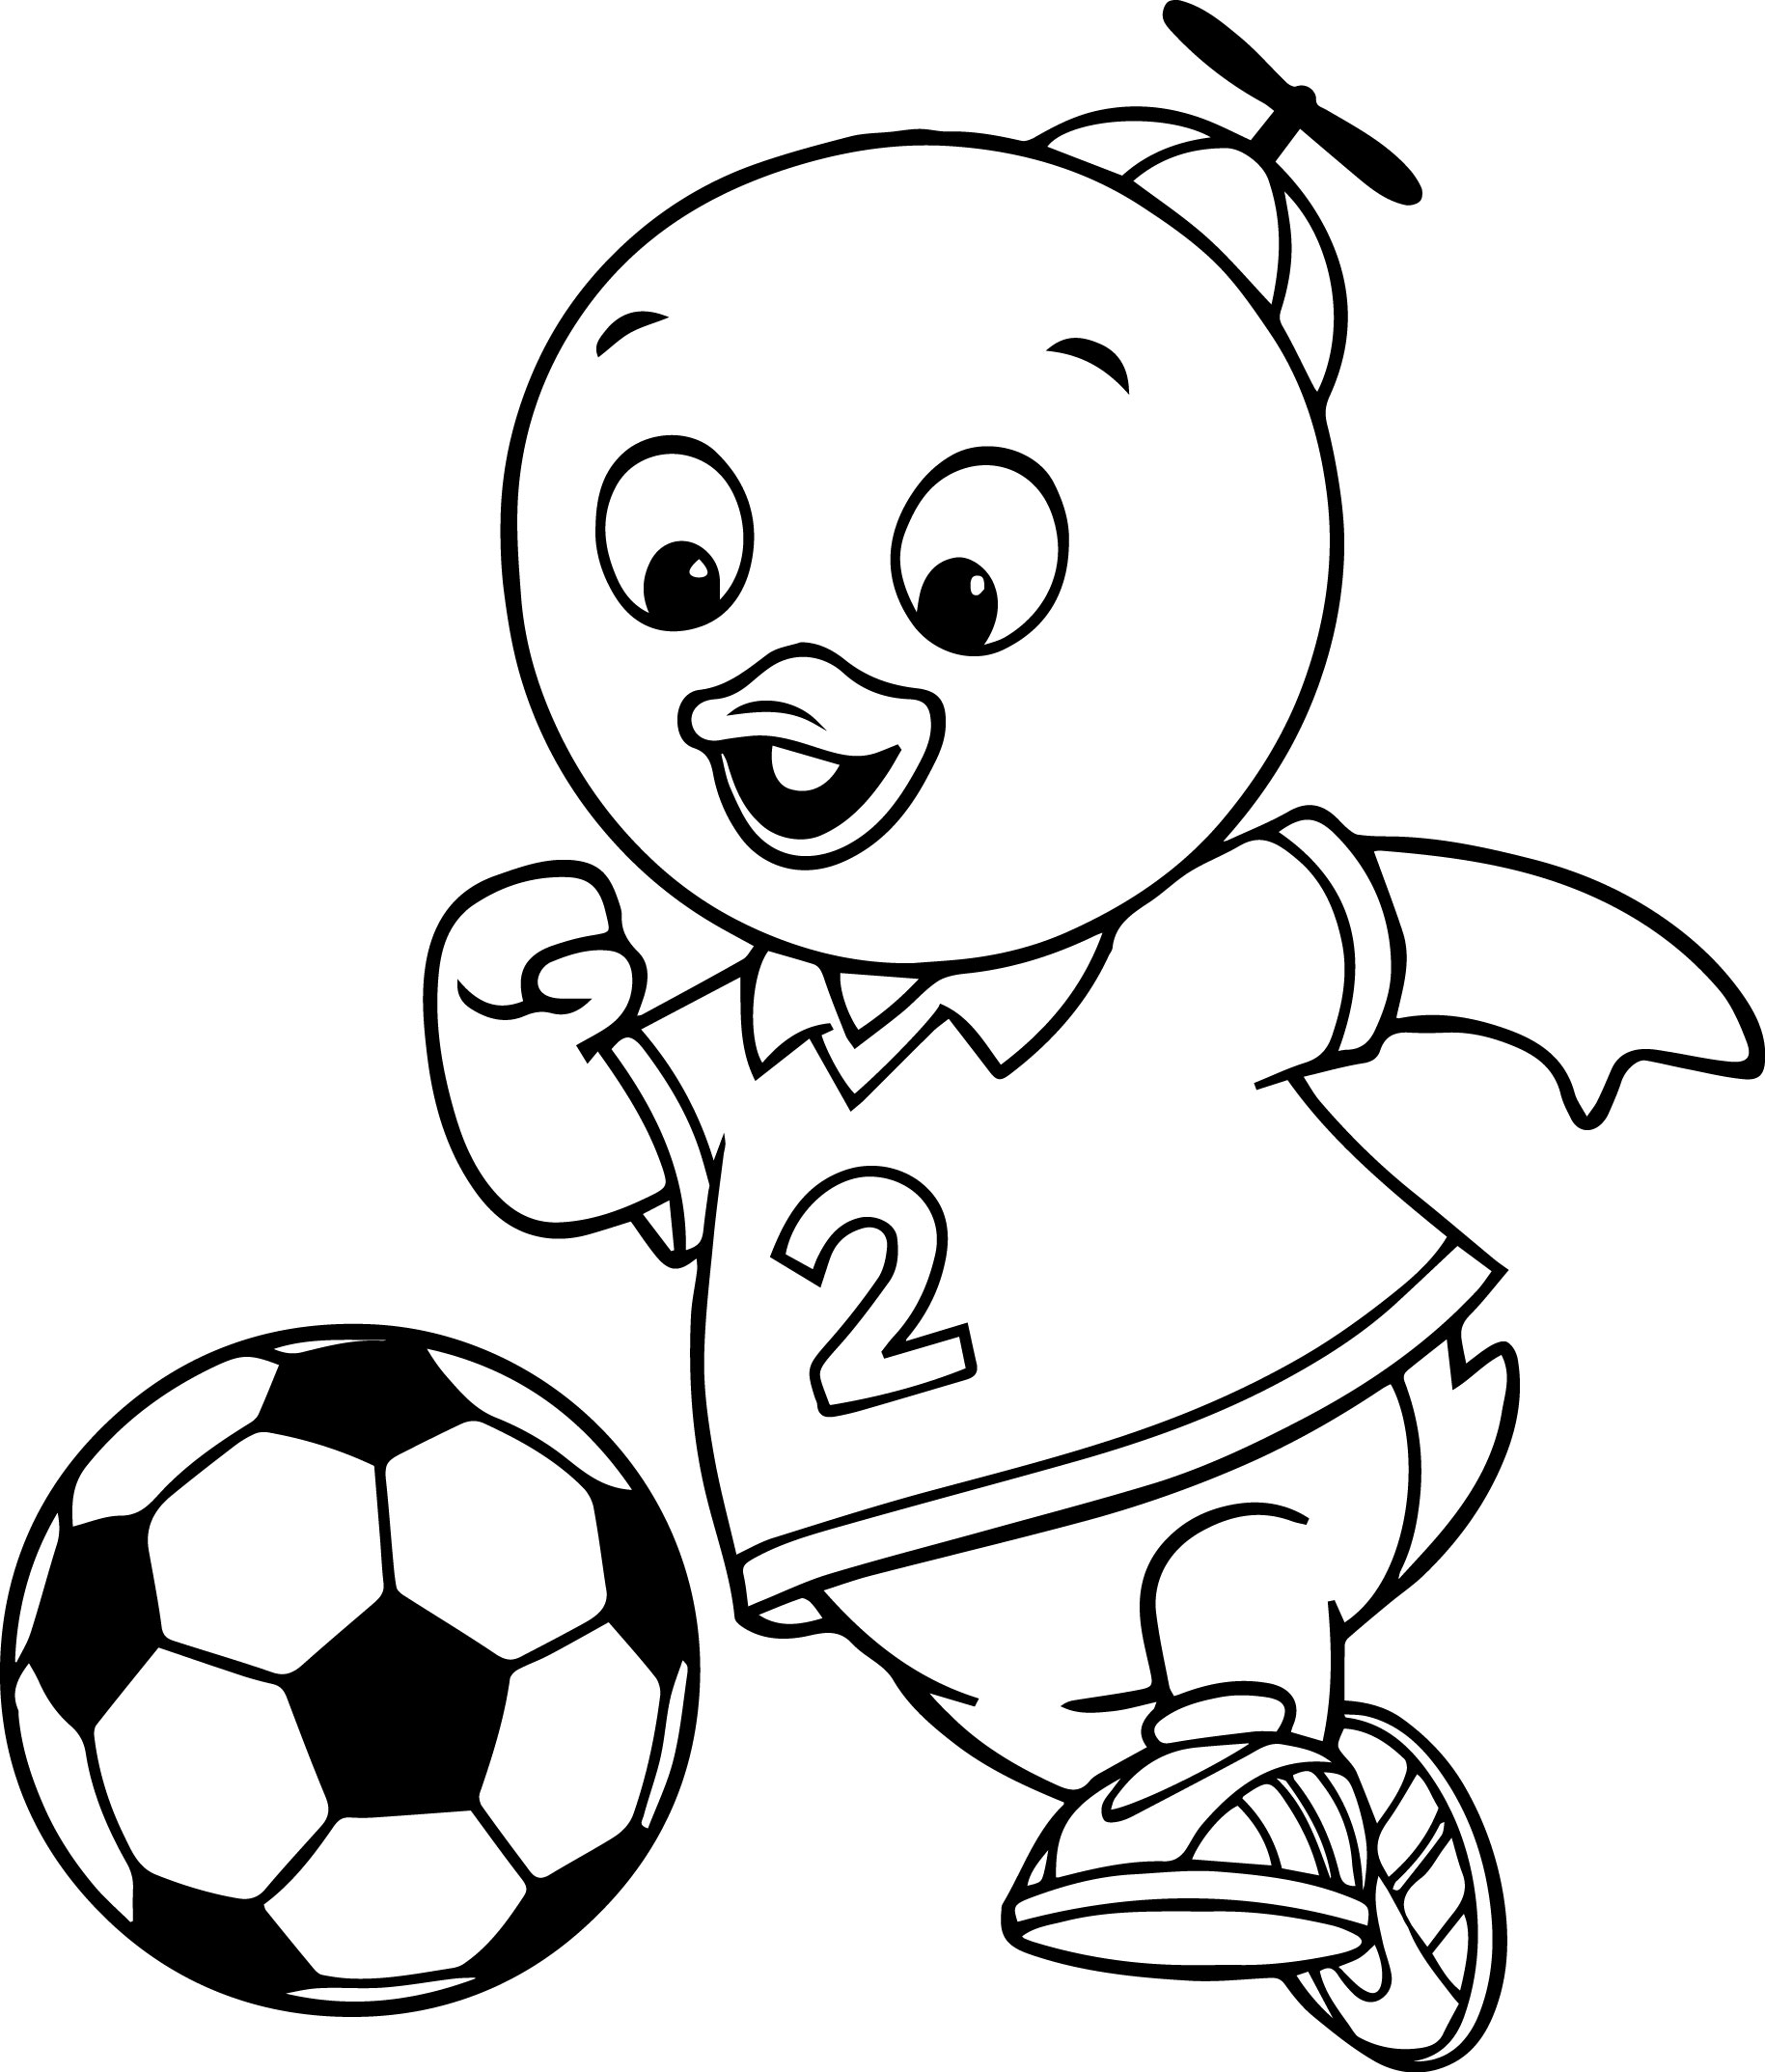 The Backyardigans Coloring Page